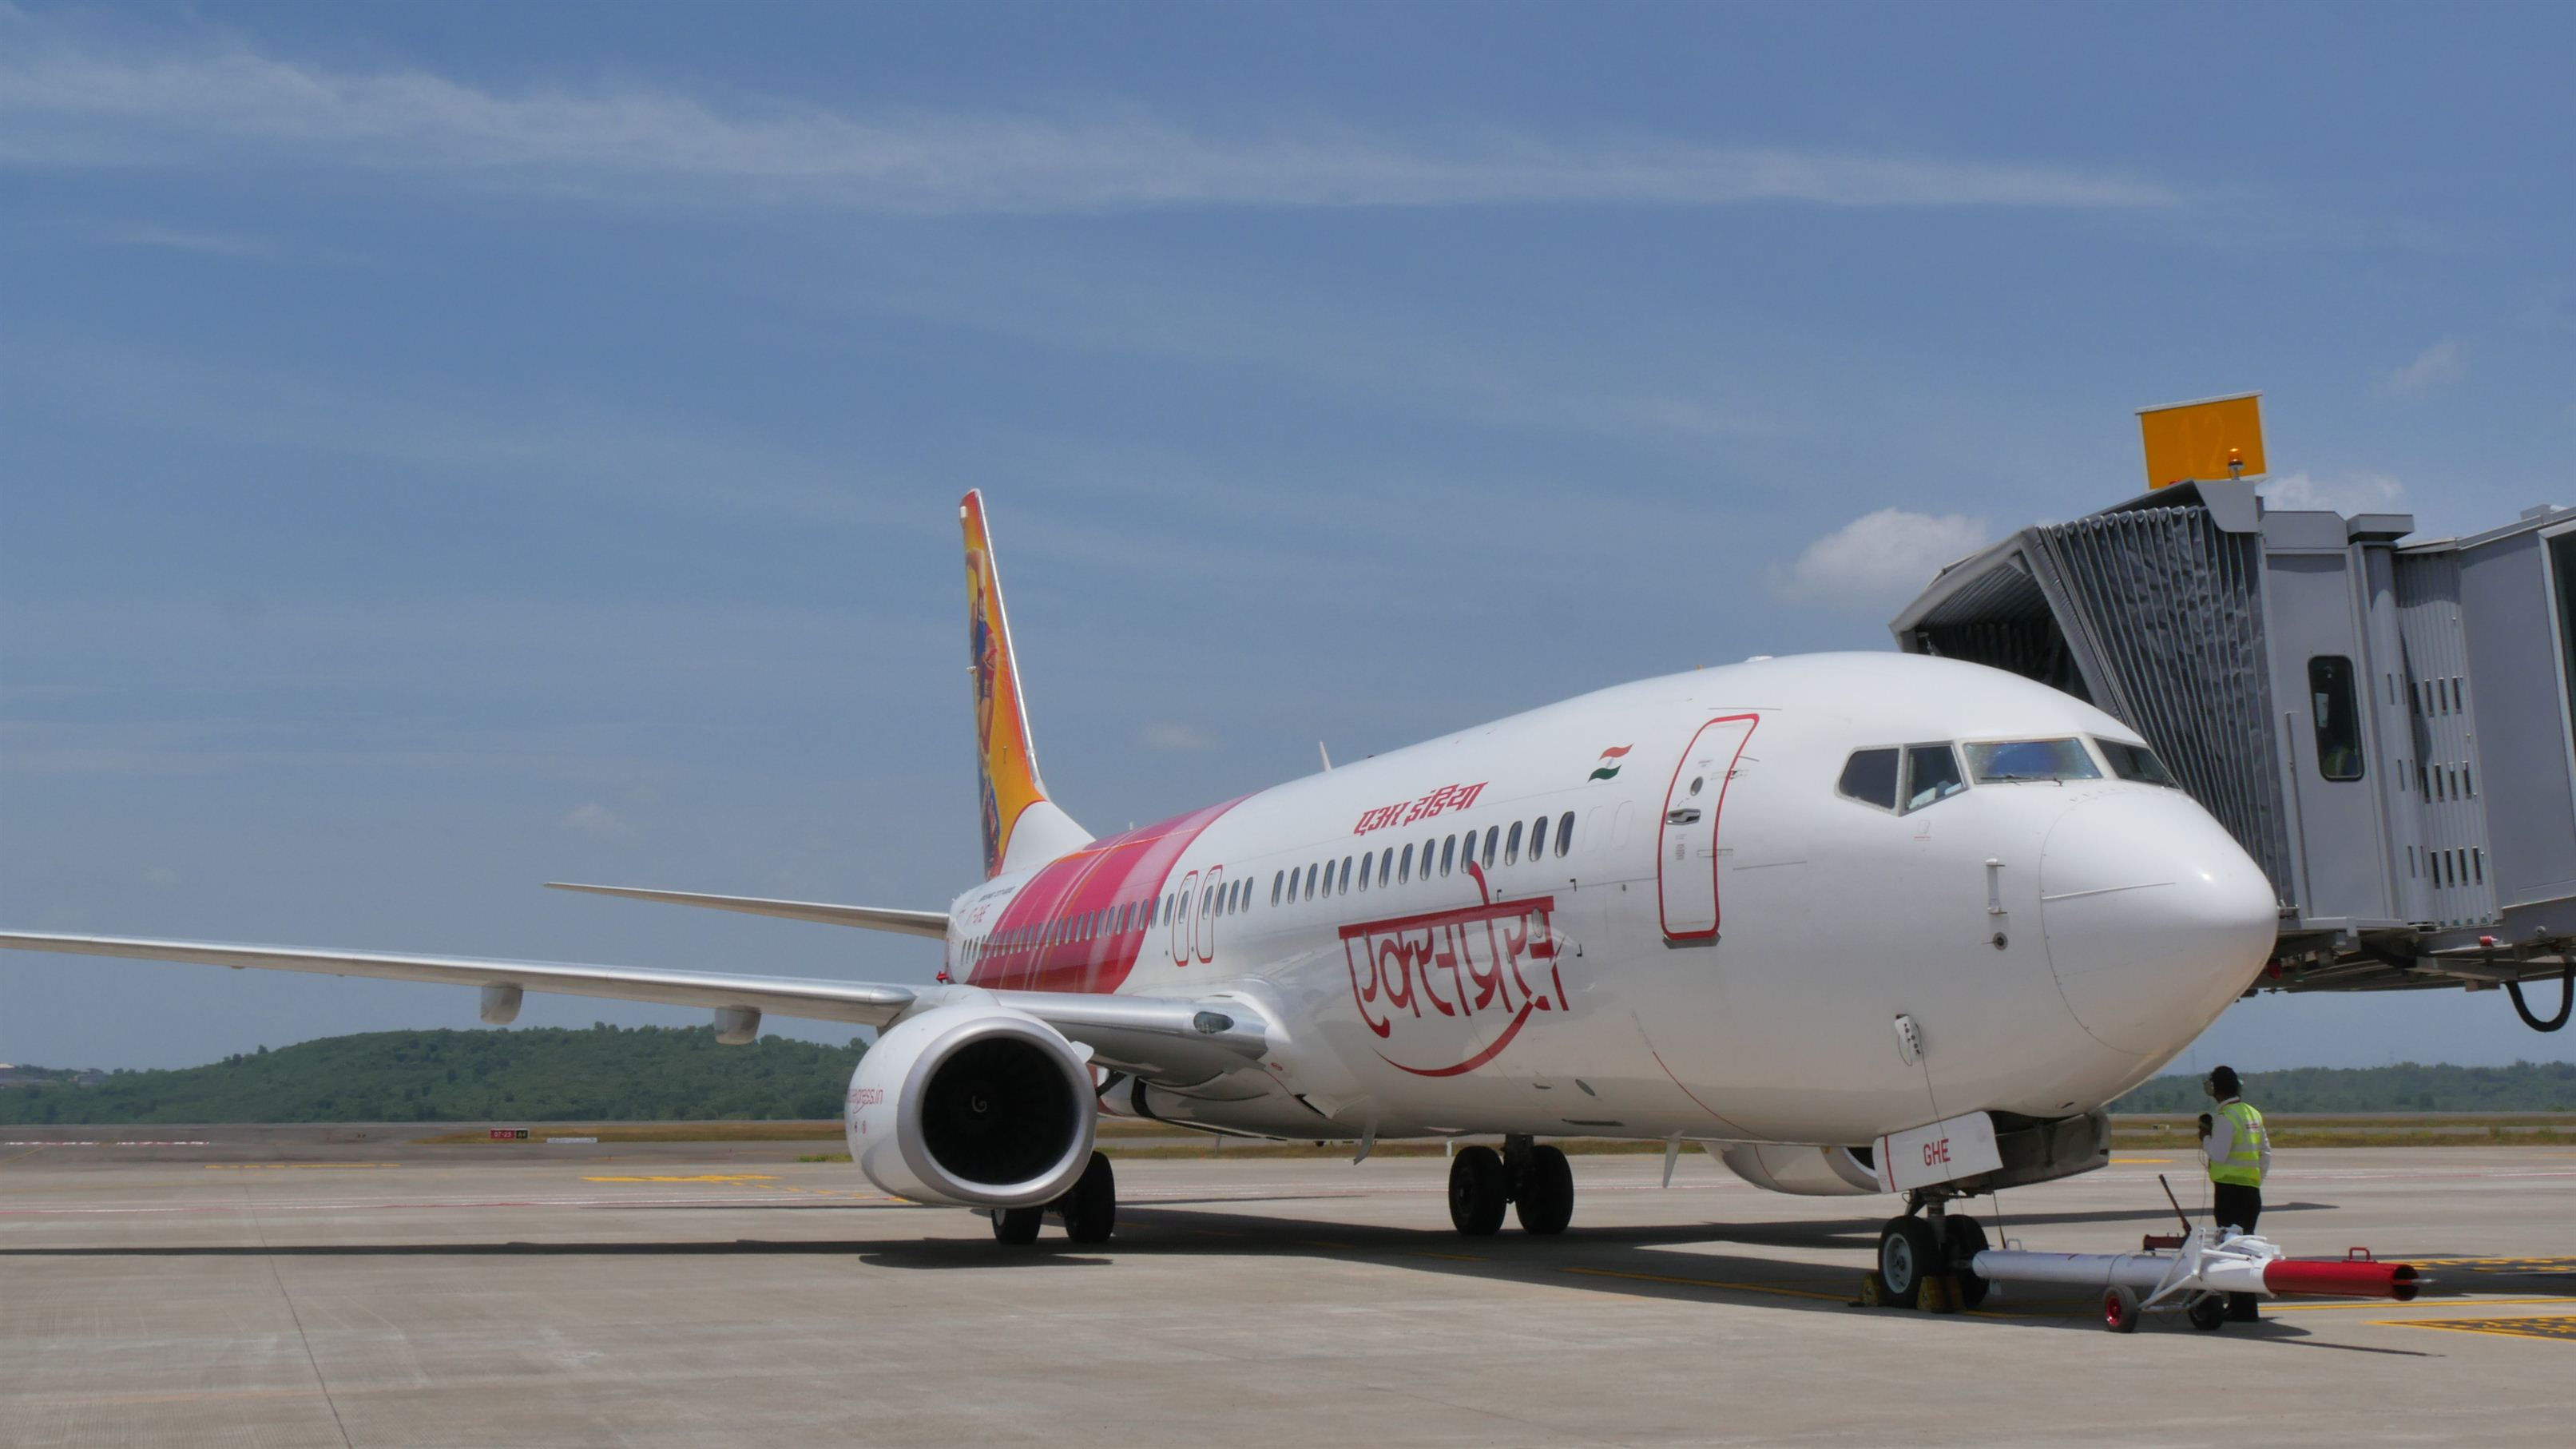 Air India Express Flight Trial